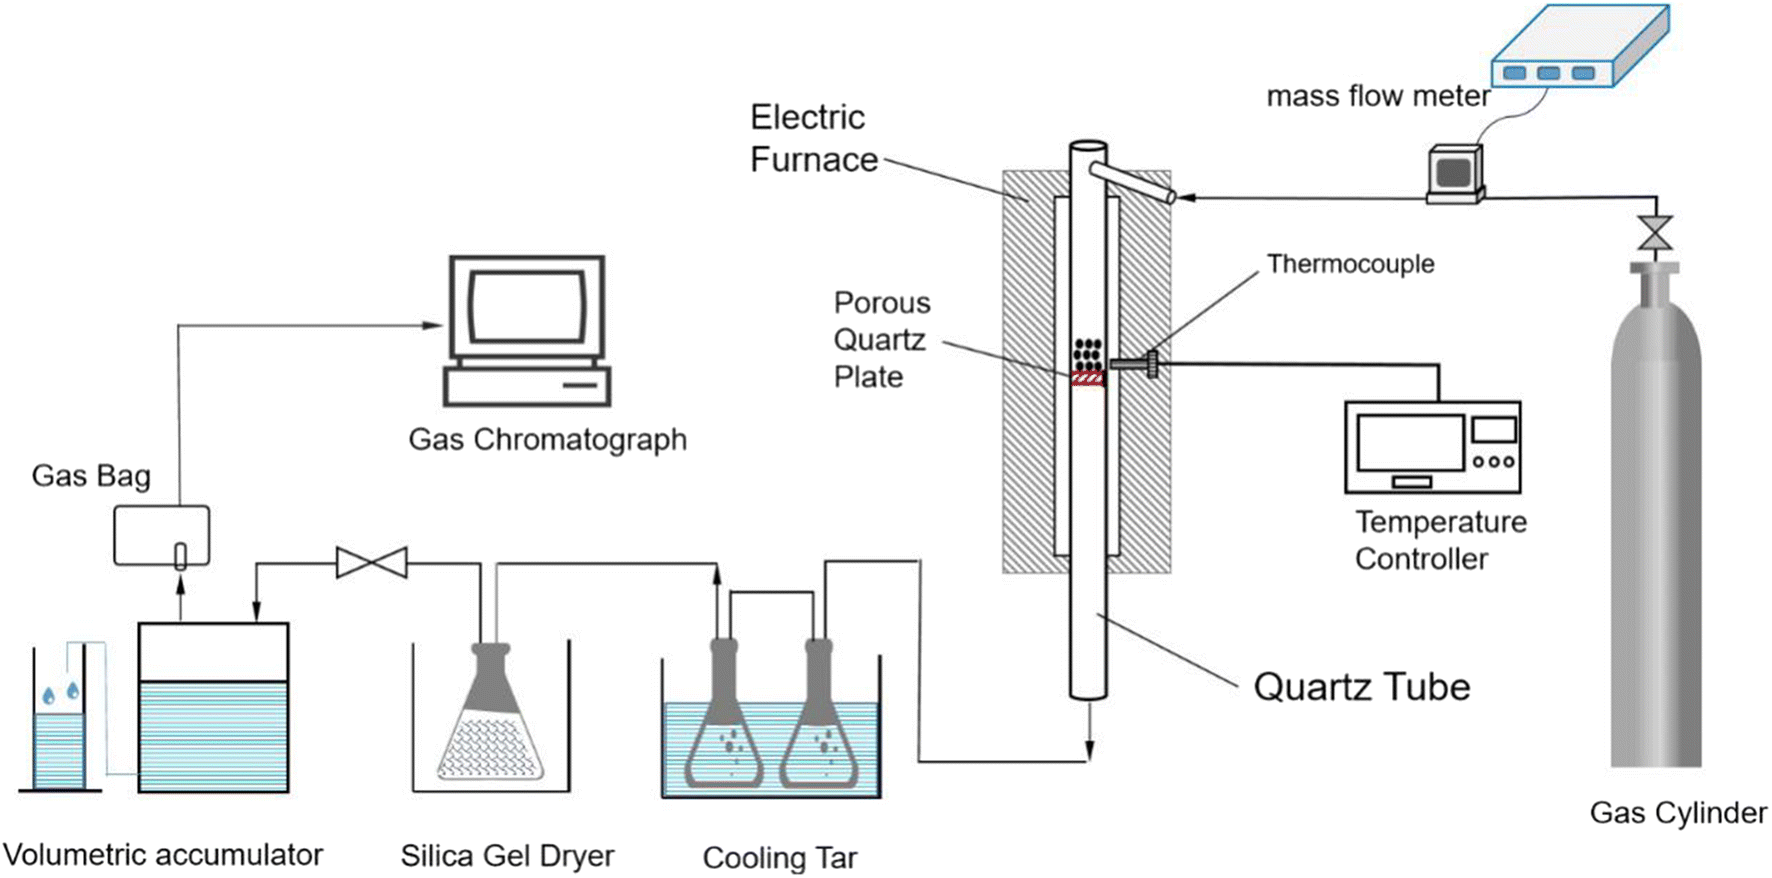 Biochar And Pyrolytic Gas Properties From Pyrolysis Of Simulated Municipal Solid Waste  Smsw